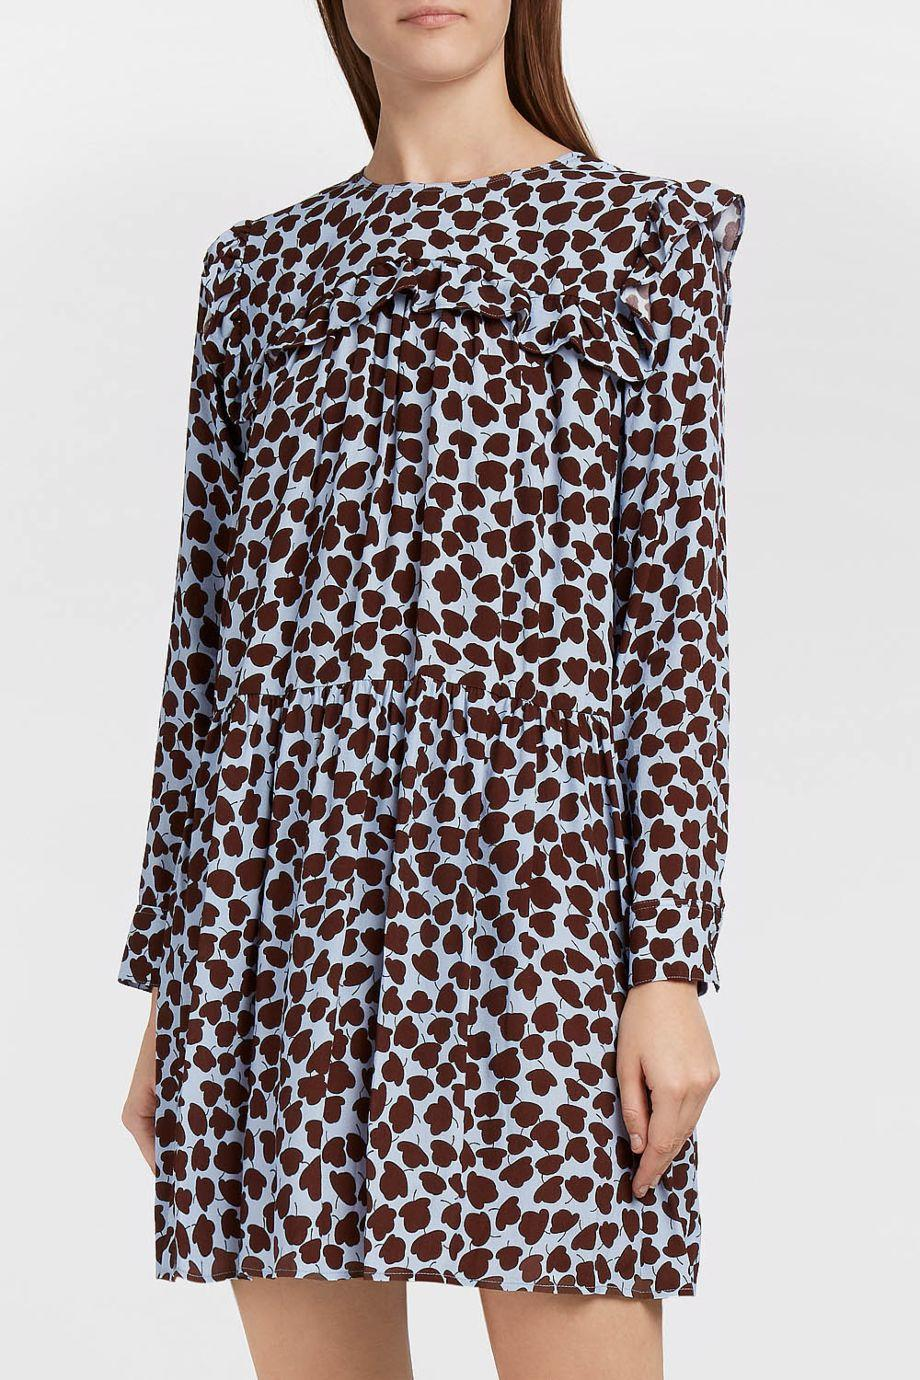 Paul & Joe Sister Concertina Ruffled Printed Crepe Dress